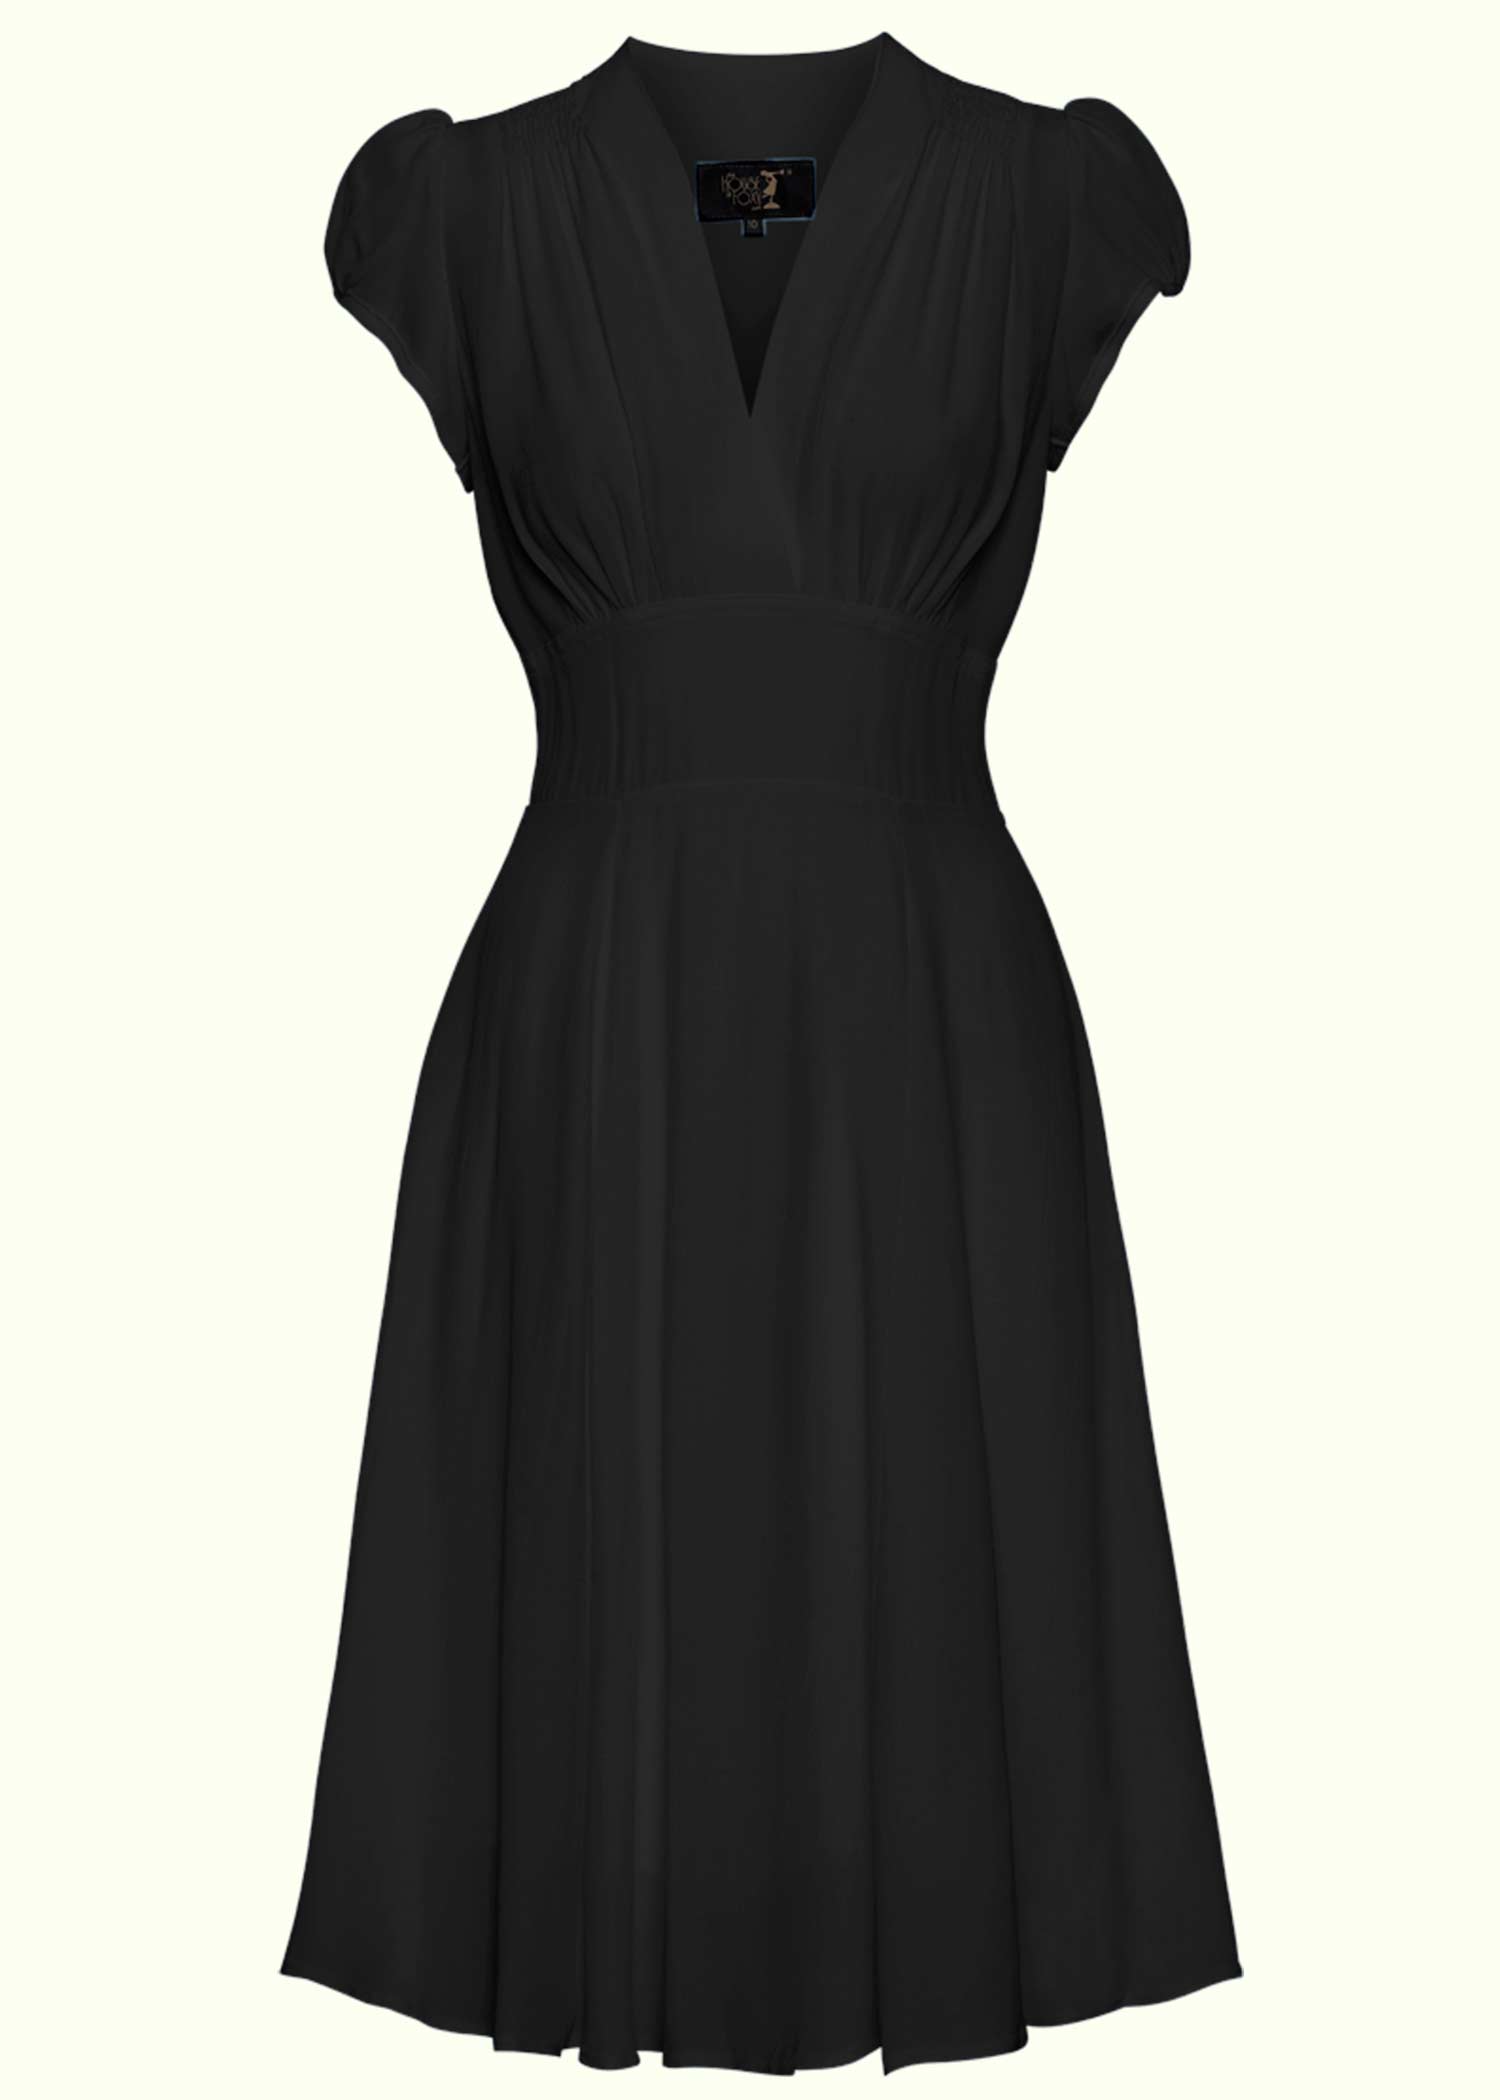 Vintage style alone dress in black from The House Of Foxy